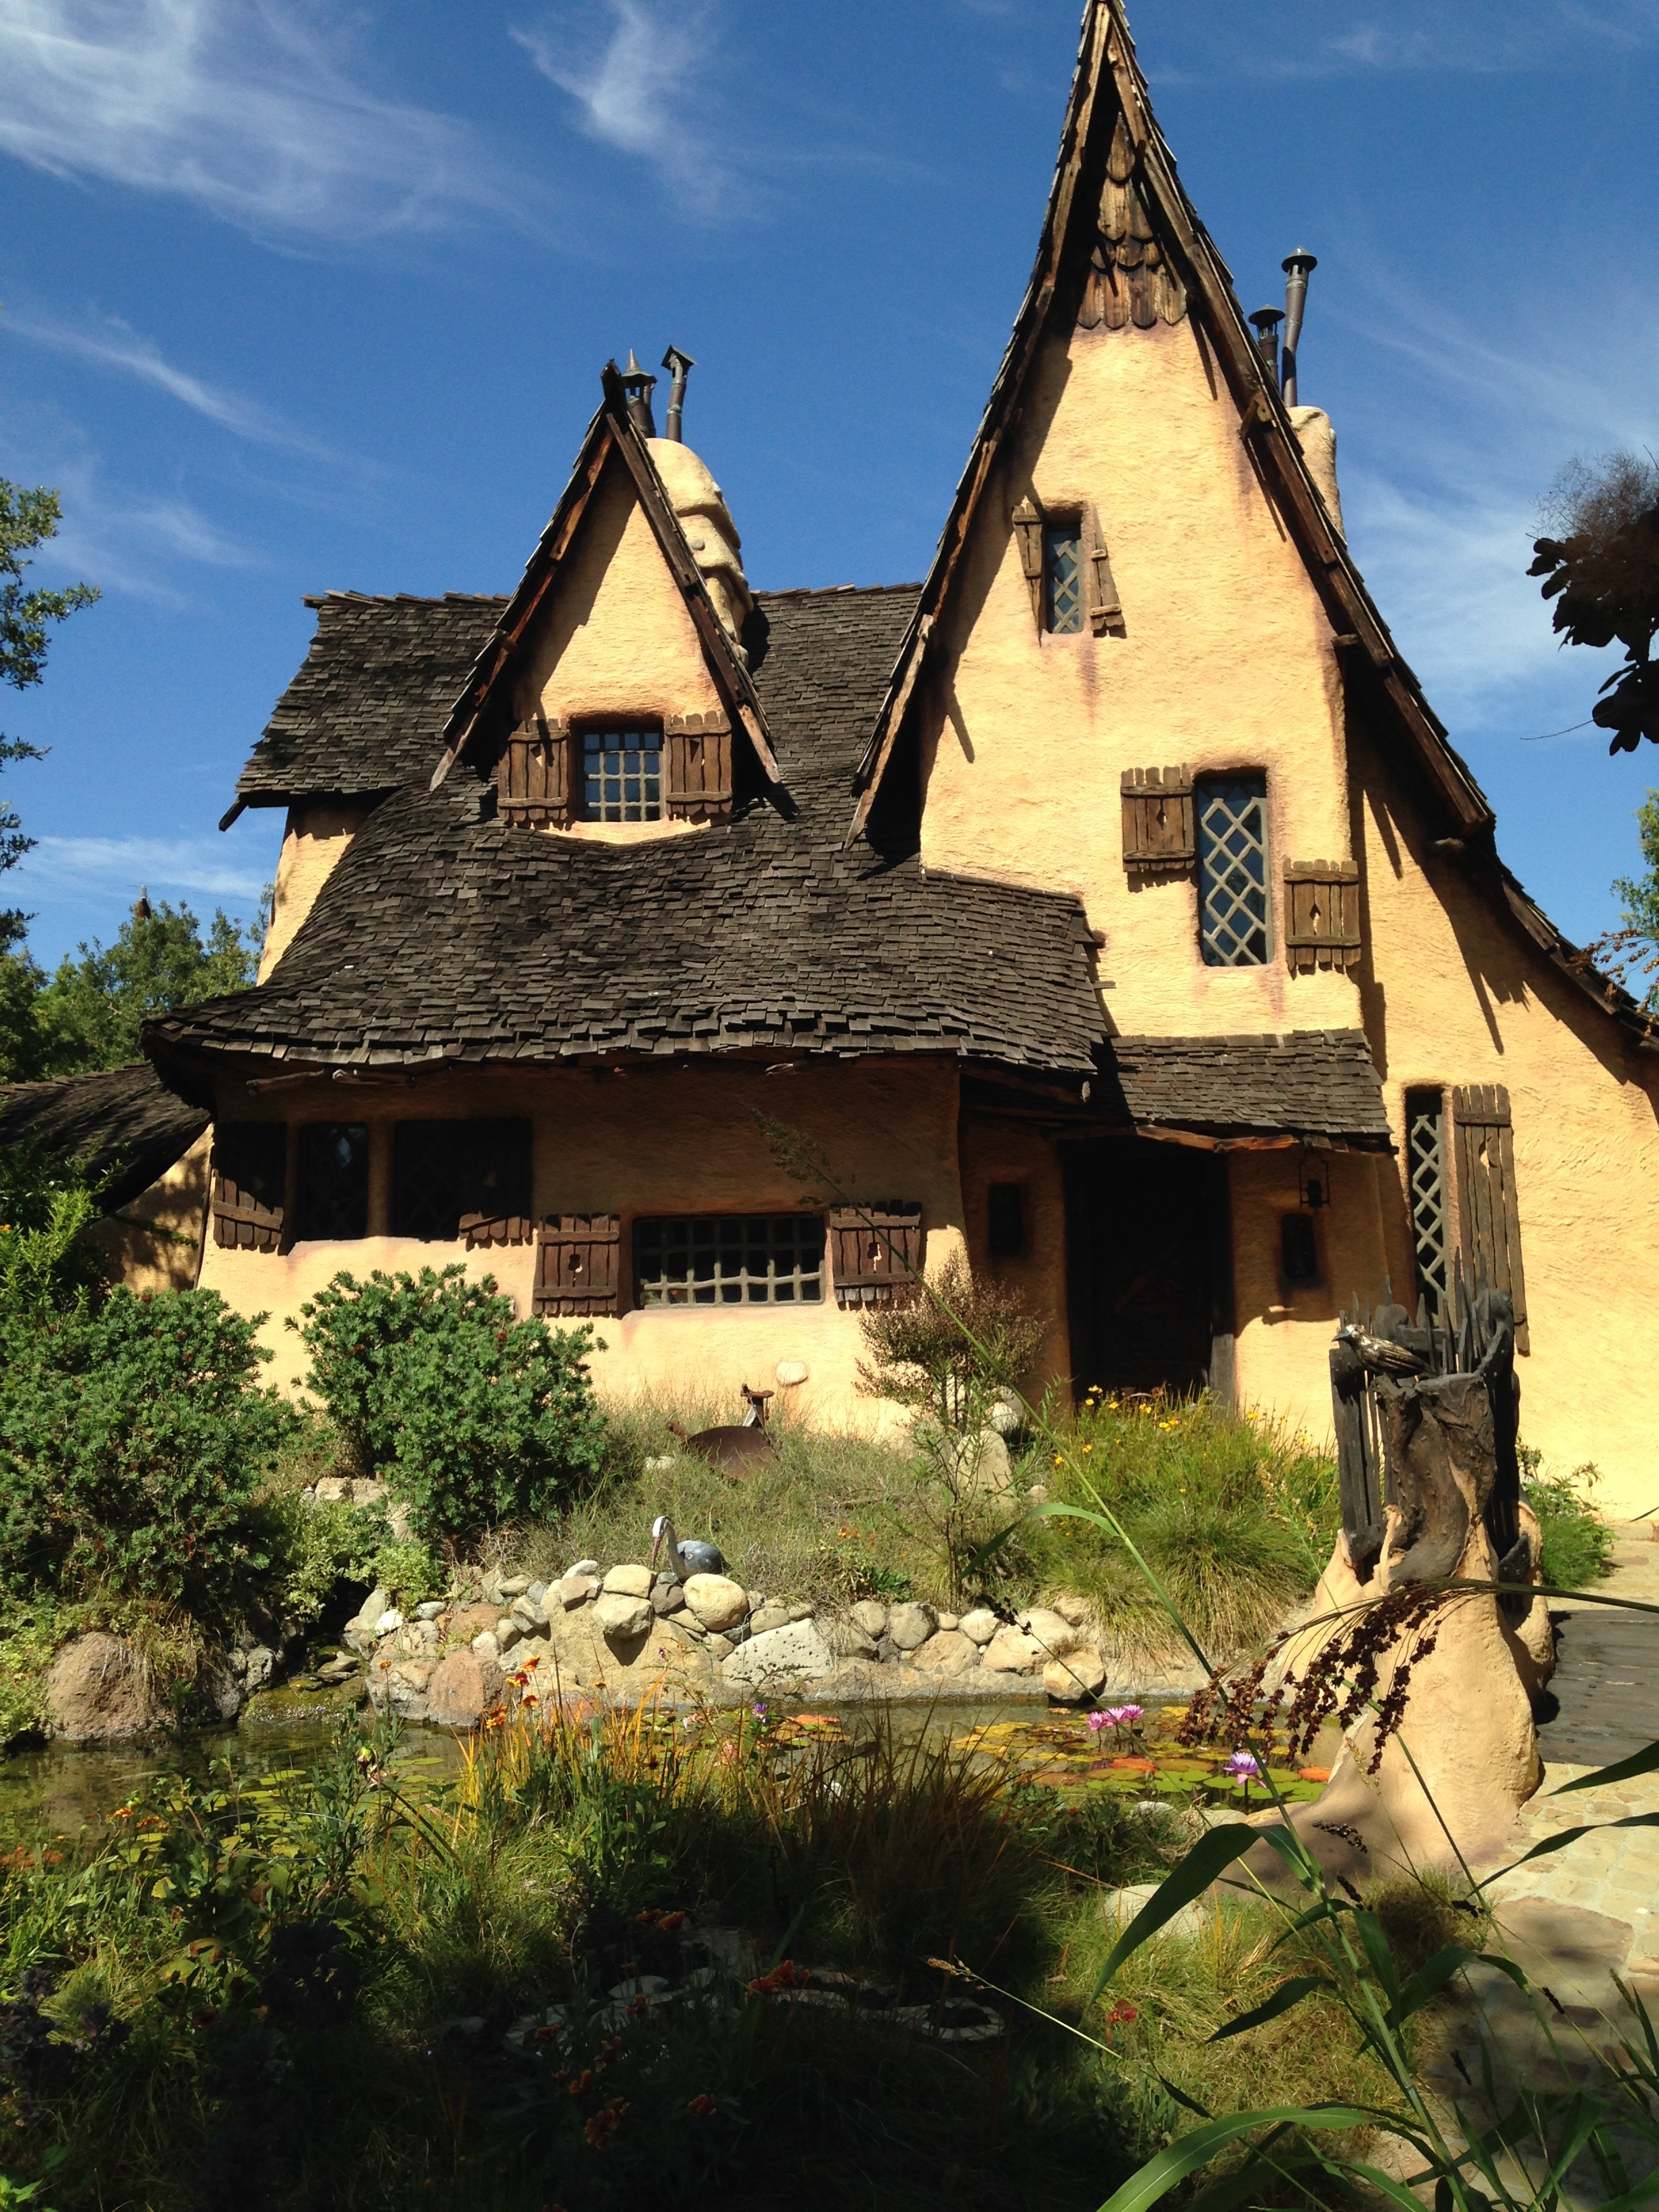 Witches House Halloween 2020 Beverly Hills THE BEVERLY HILLS WITCH HOUSE | California Curiosities